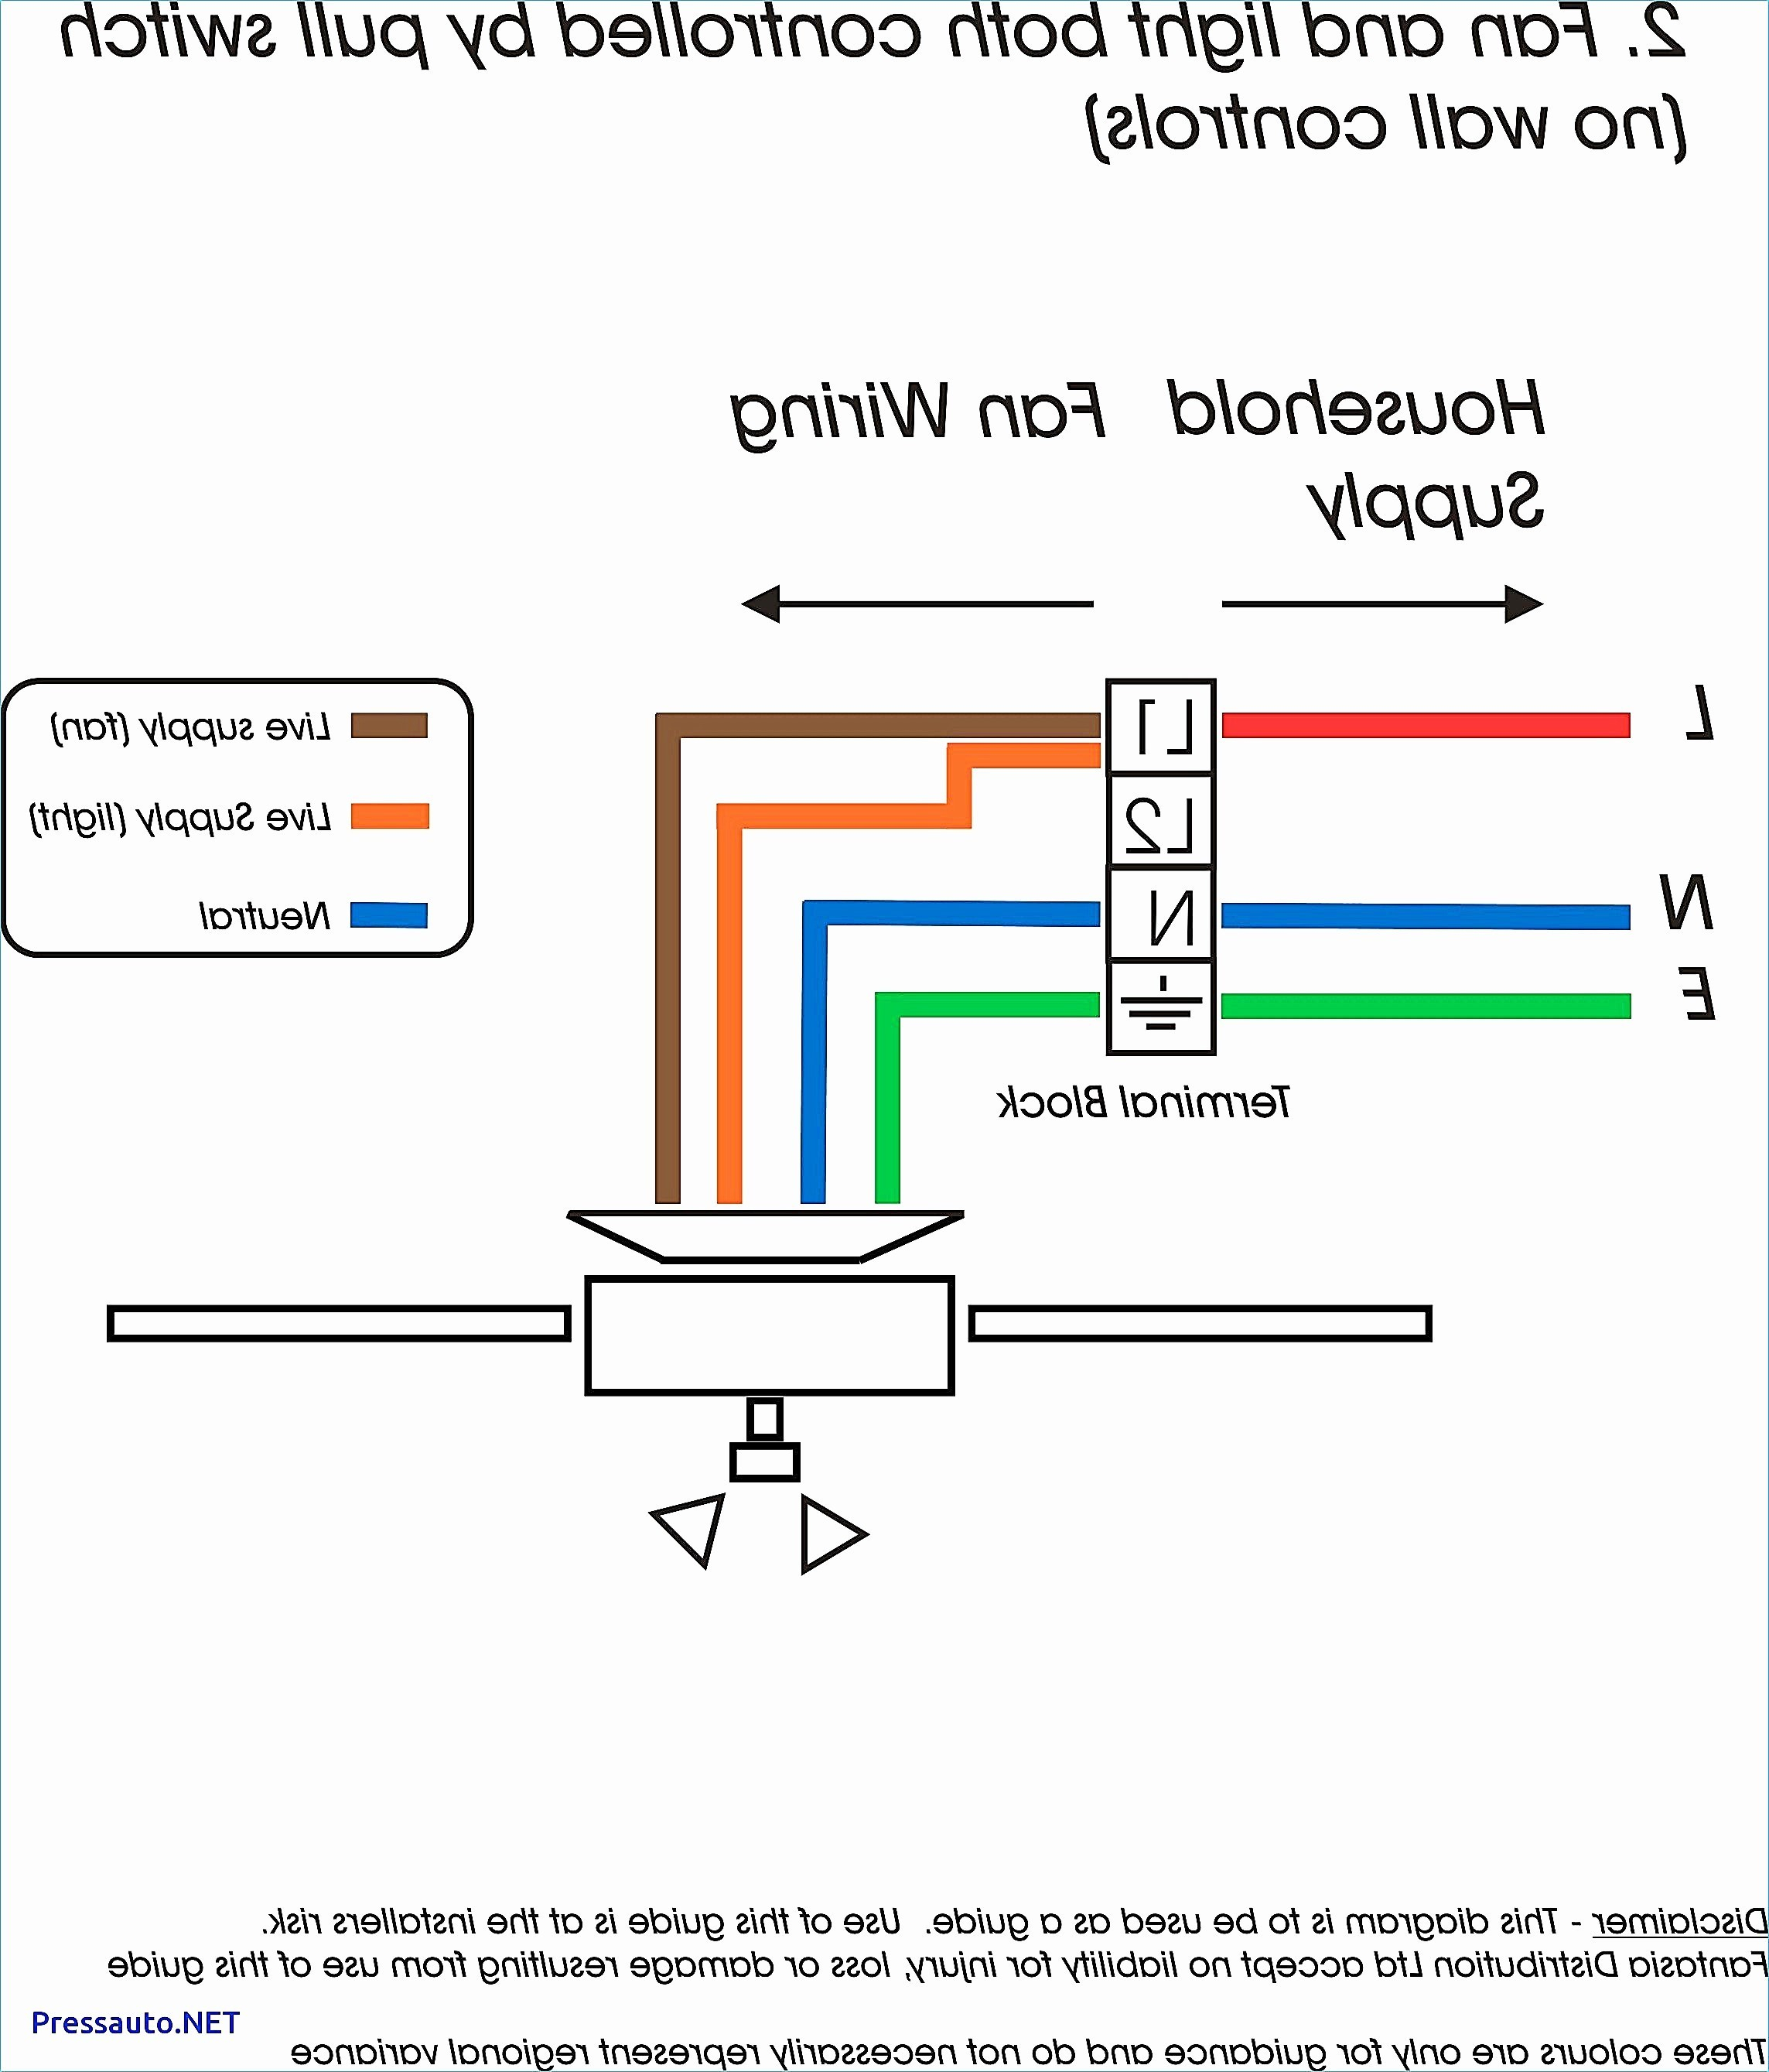 recessed lighting wiring diagram Download-recessed lighting wiring diagram Collection Wiring Diagram Recessed Lighting Valid Recessed Lighting Wiring Diagram Awesome 20-t